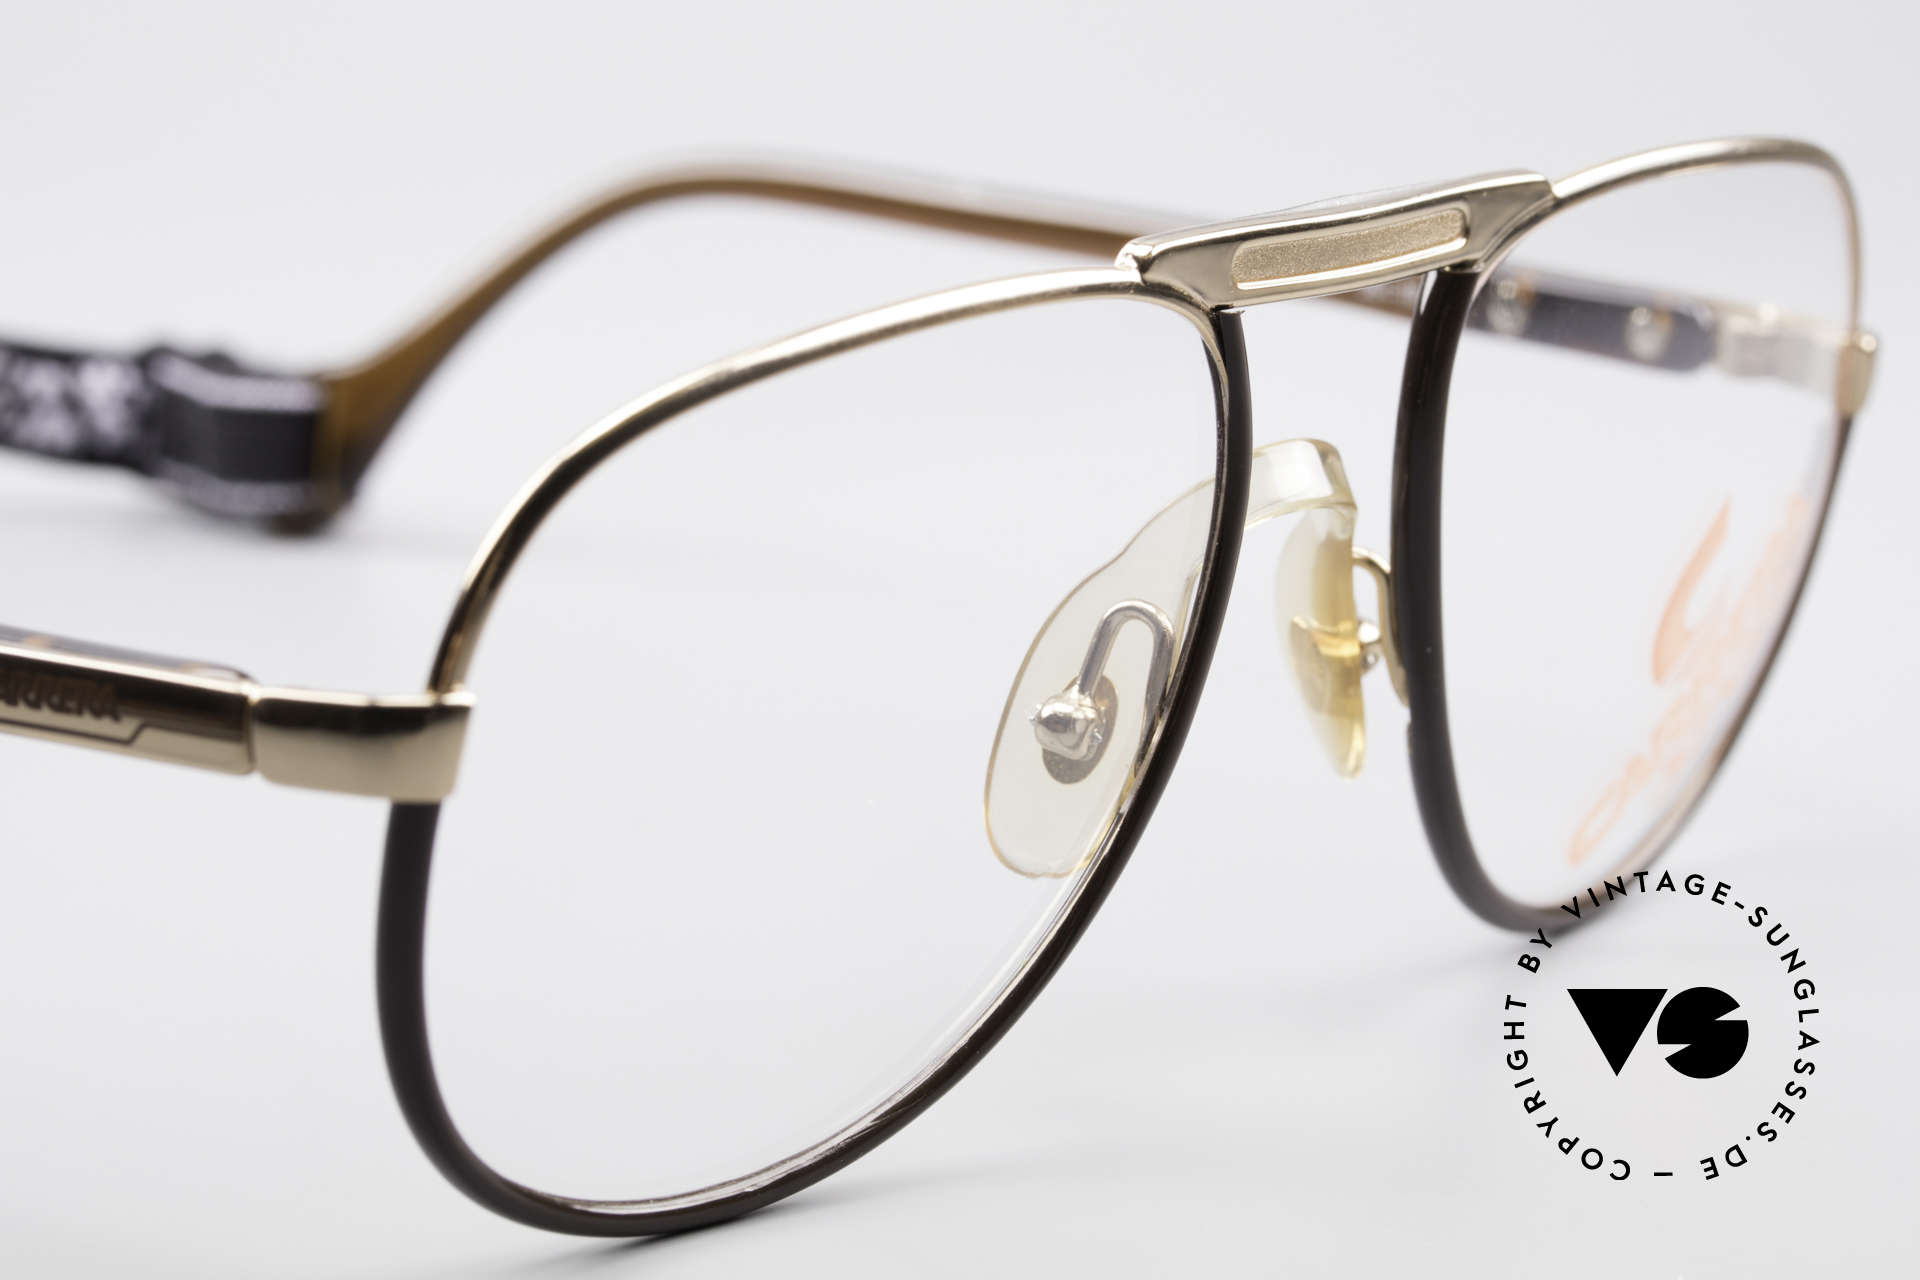 Carrera 5511 Sports Glasses 80's Vintage, unworn (like all our vintage glasses by Carrera), Made for Men